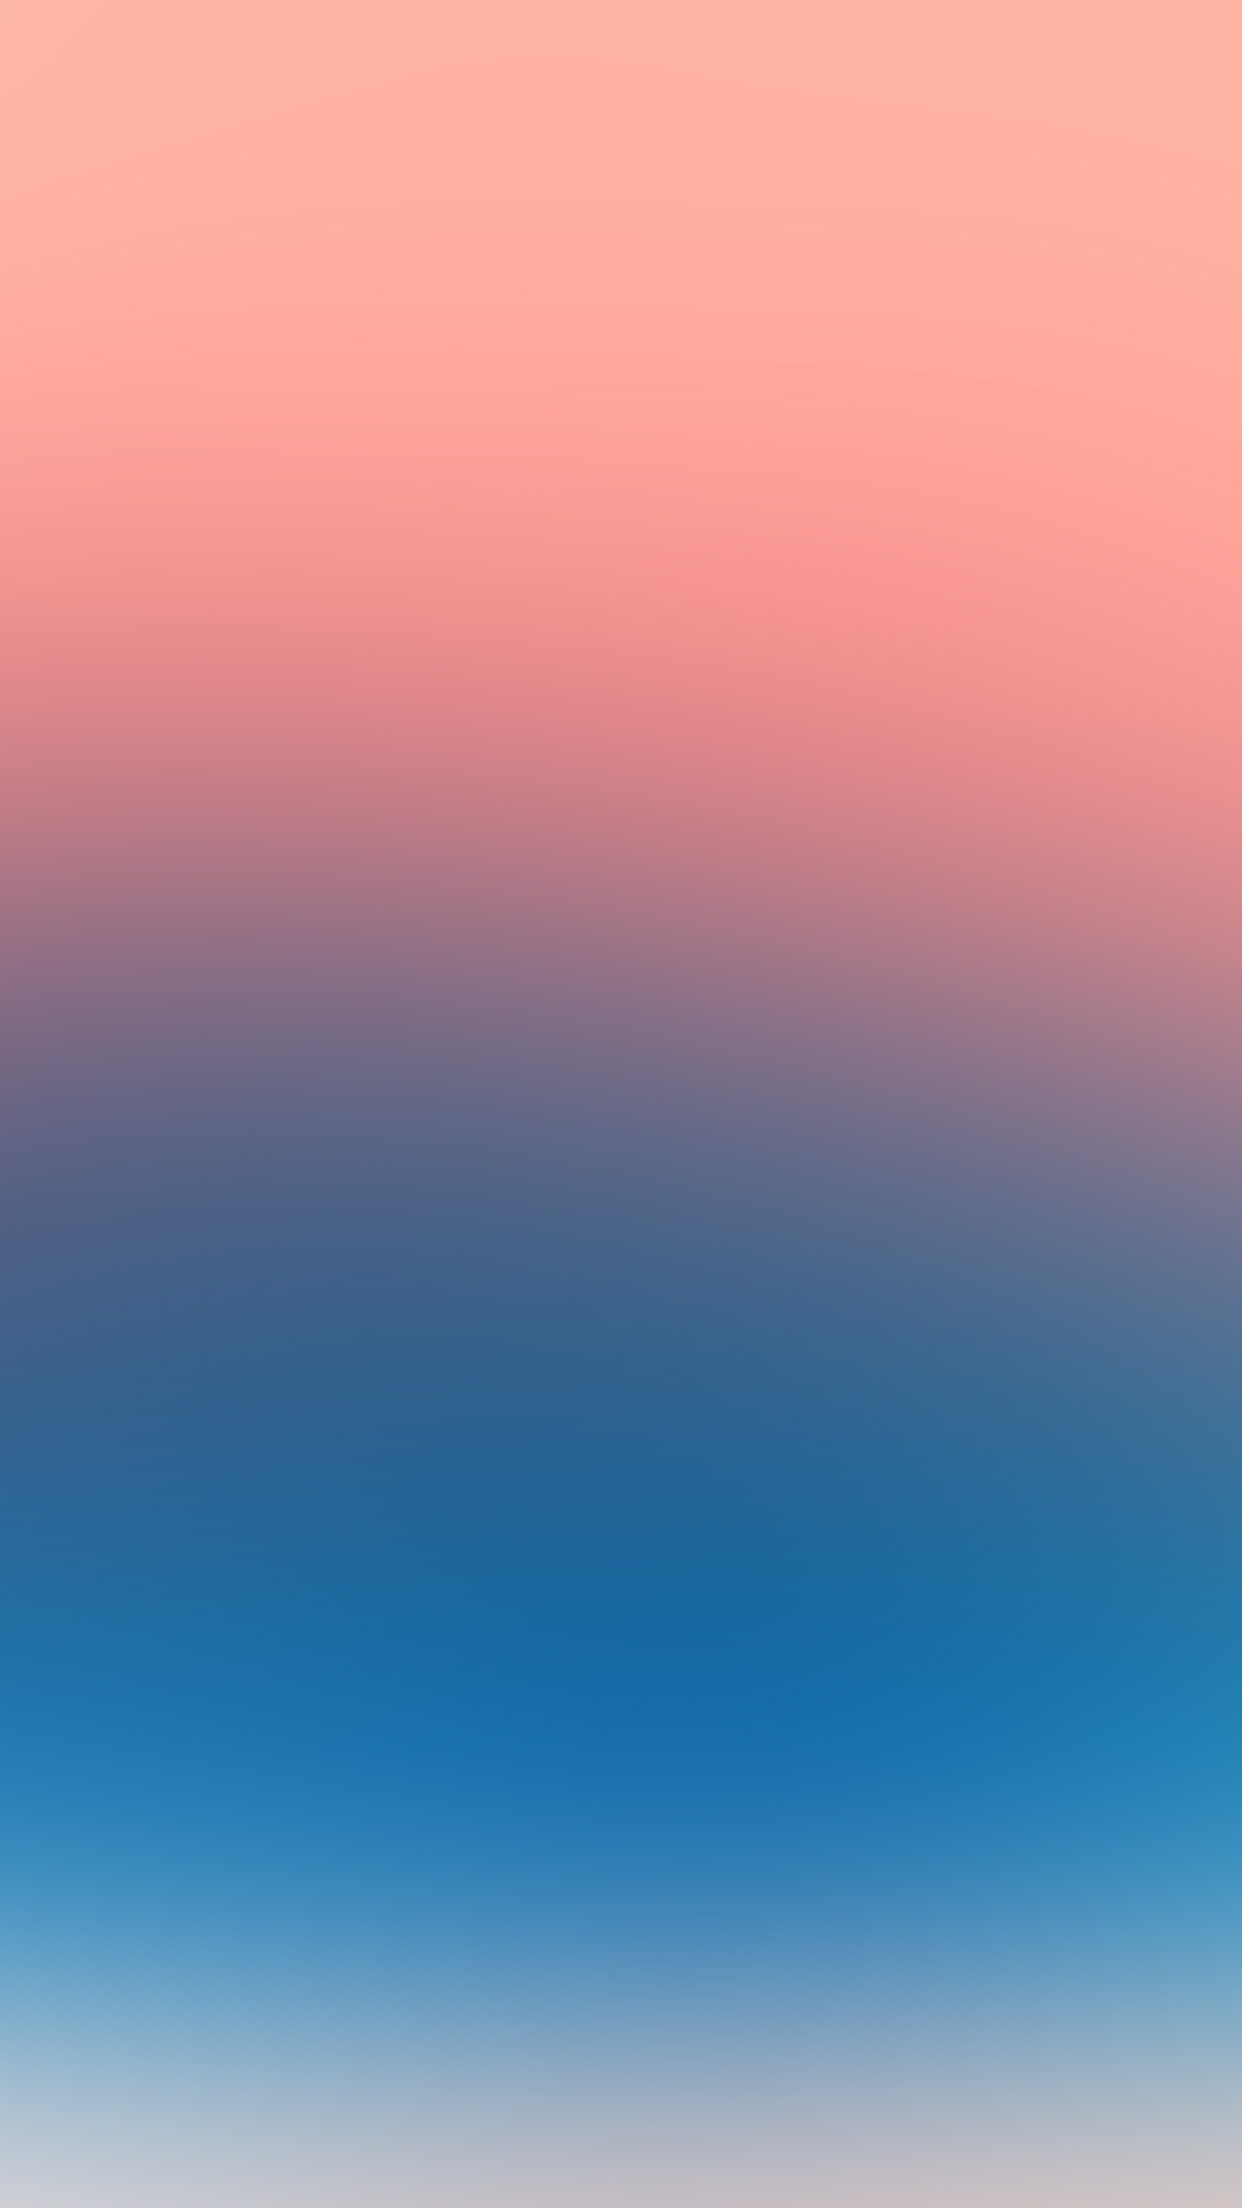 iphone7papers com iphone7 wallpaper si31 pink blue gradation blur